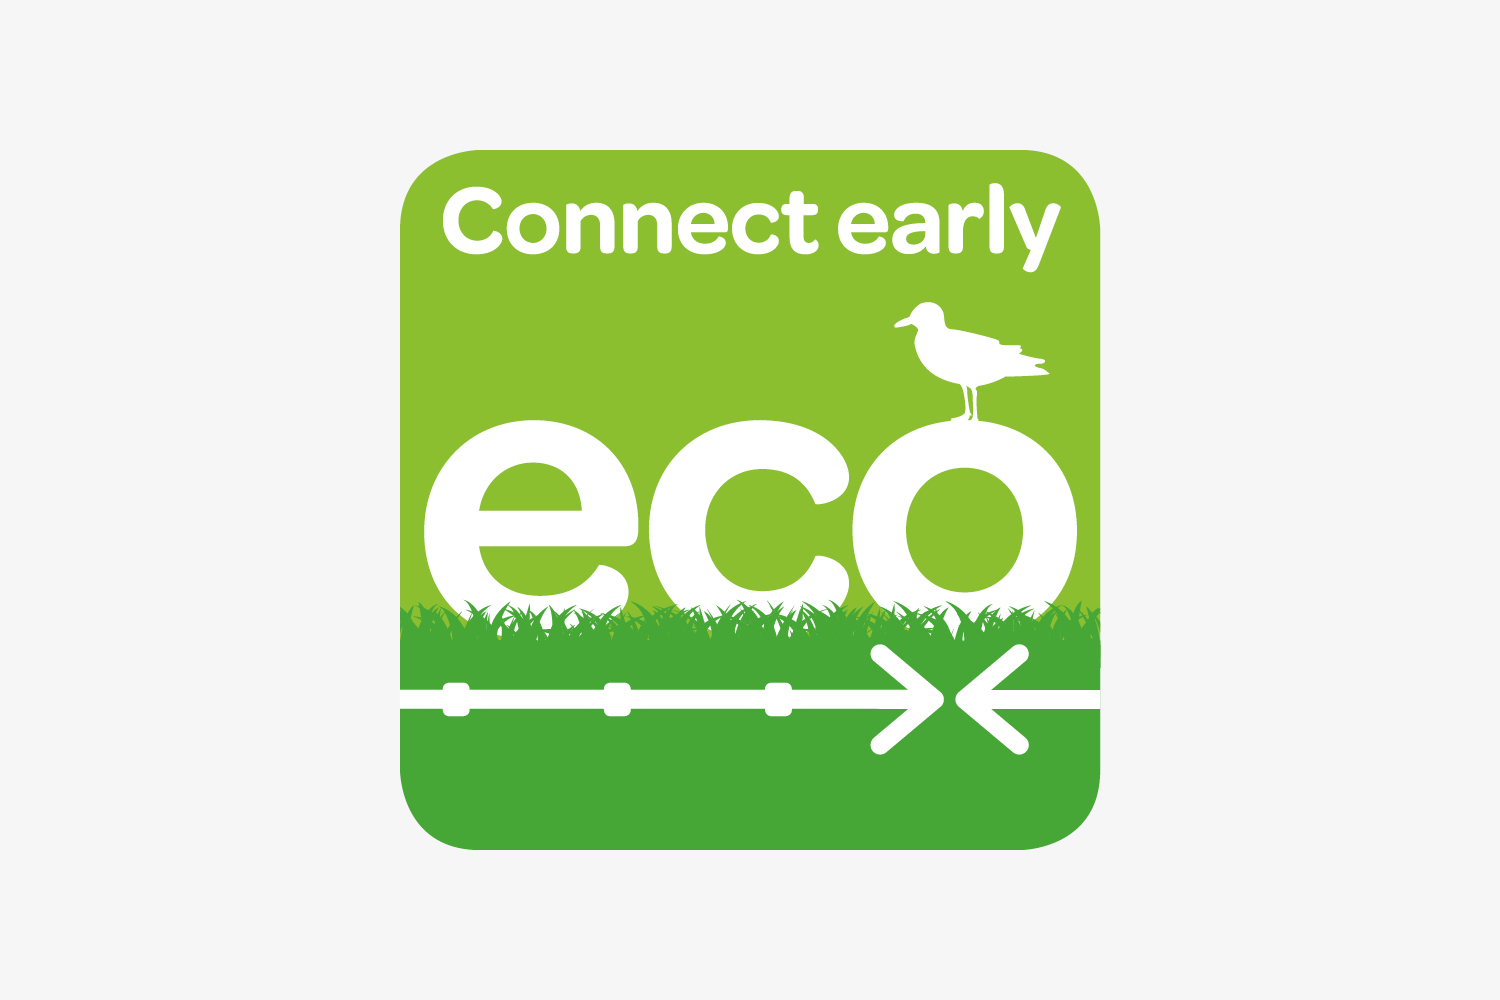 Peninsula ECO (Early Connection Option) connects property owners early to the new sewerage system.